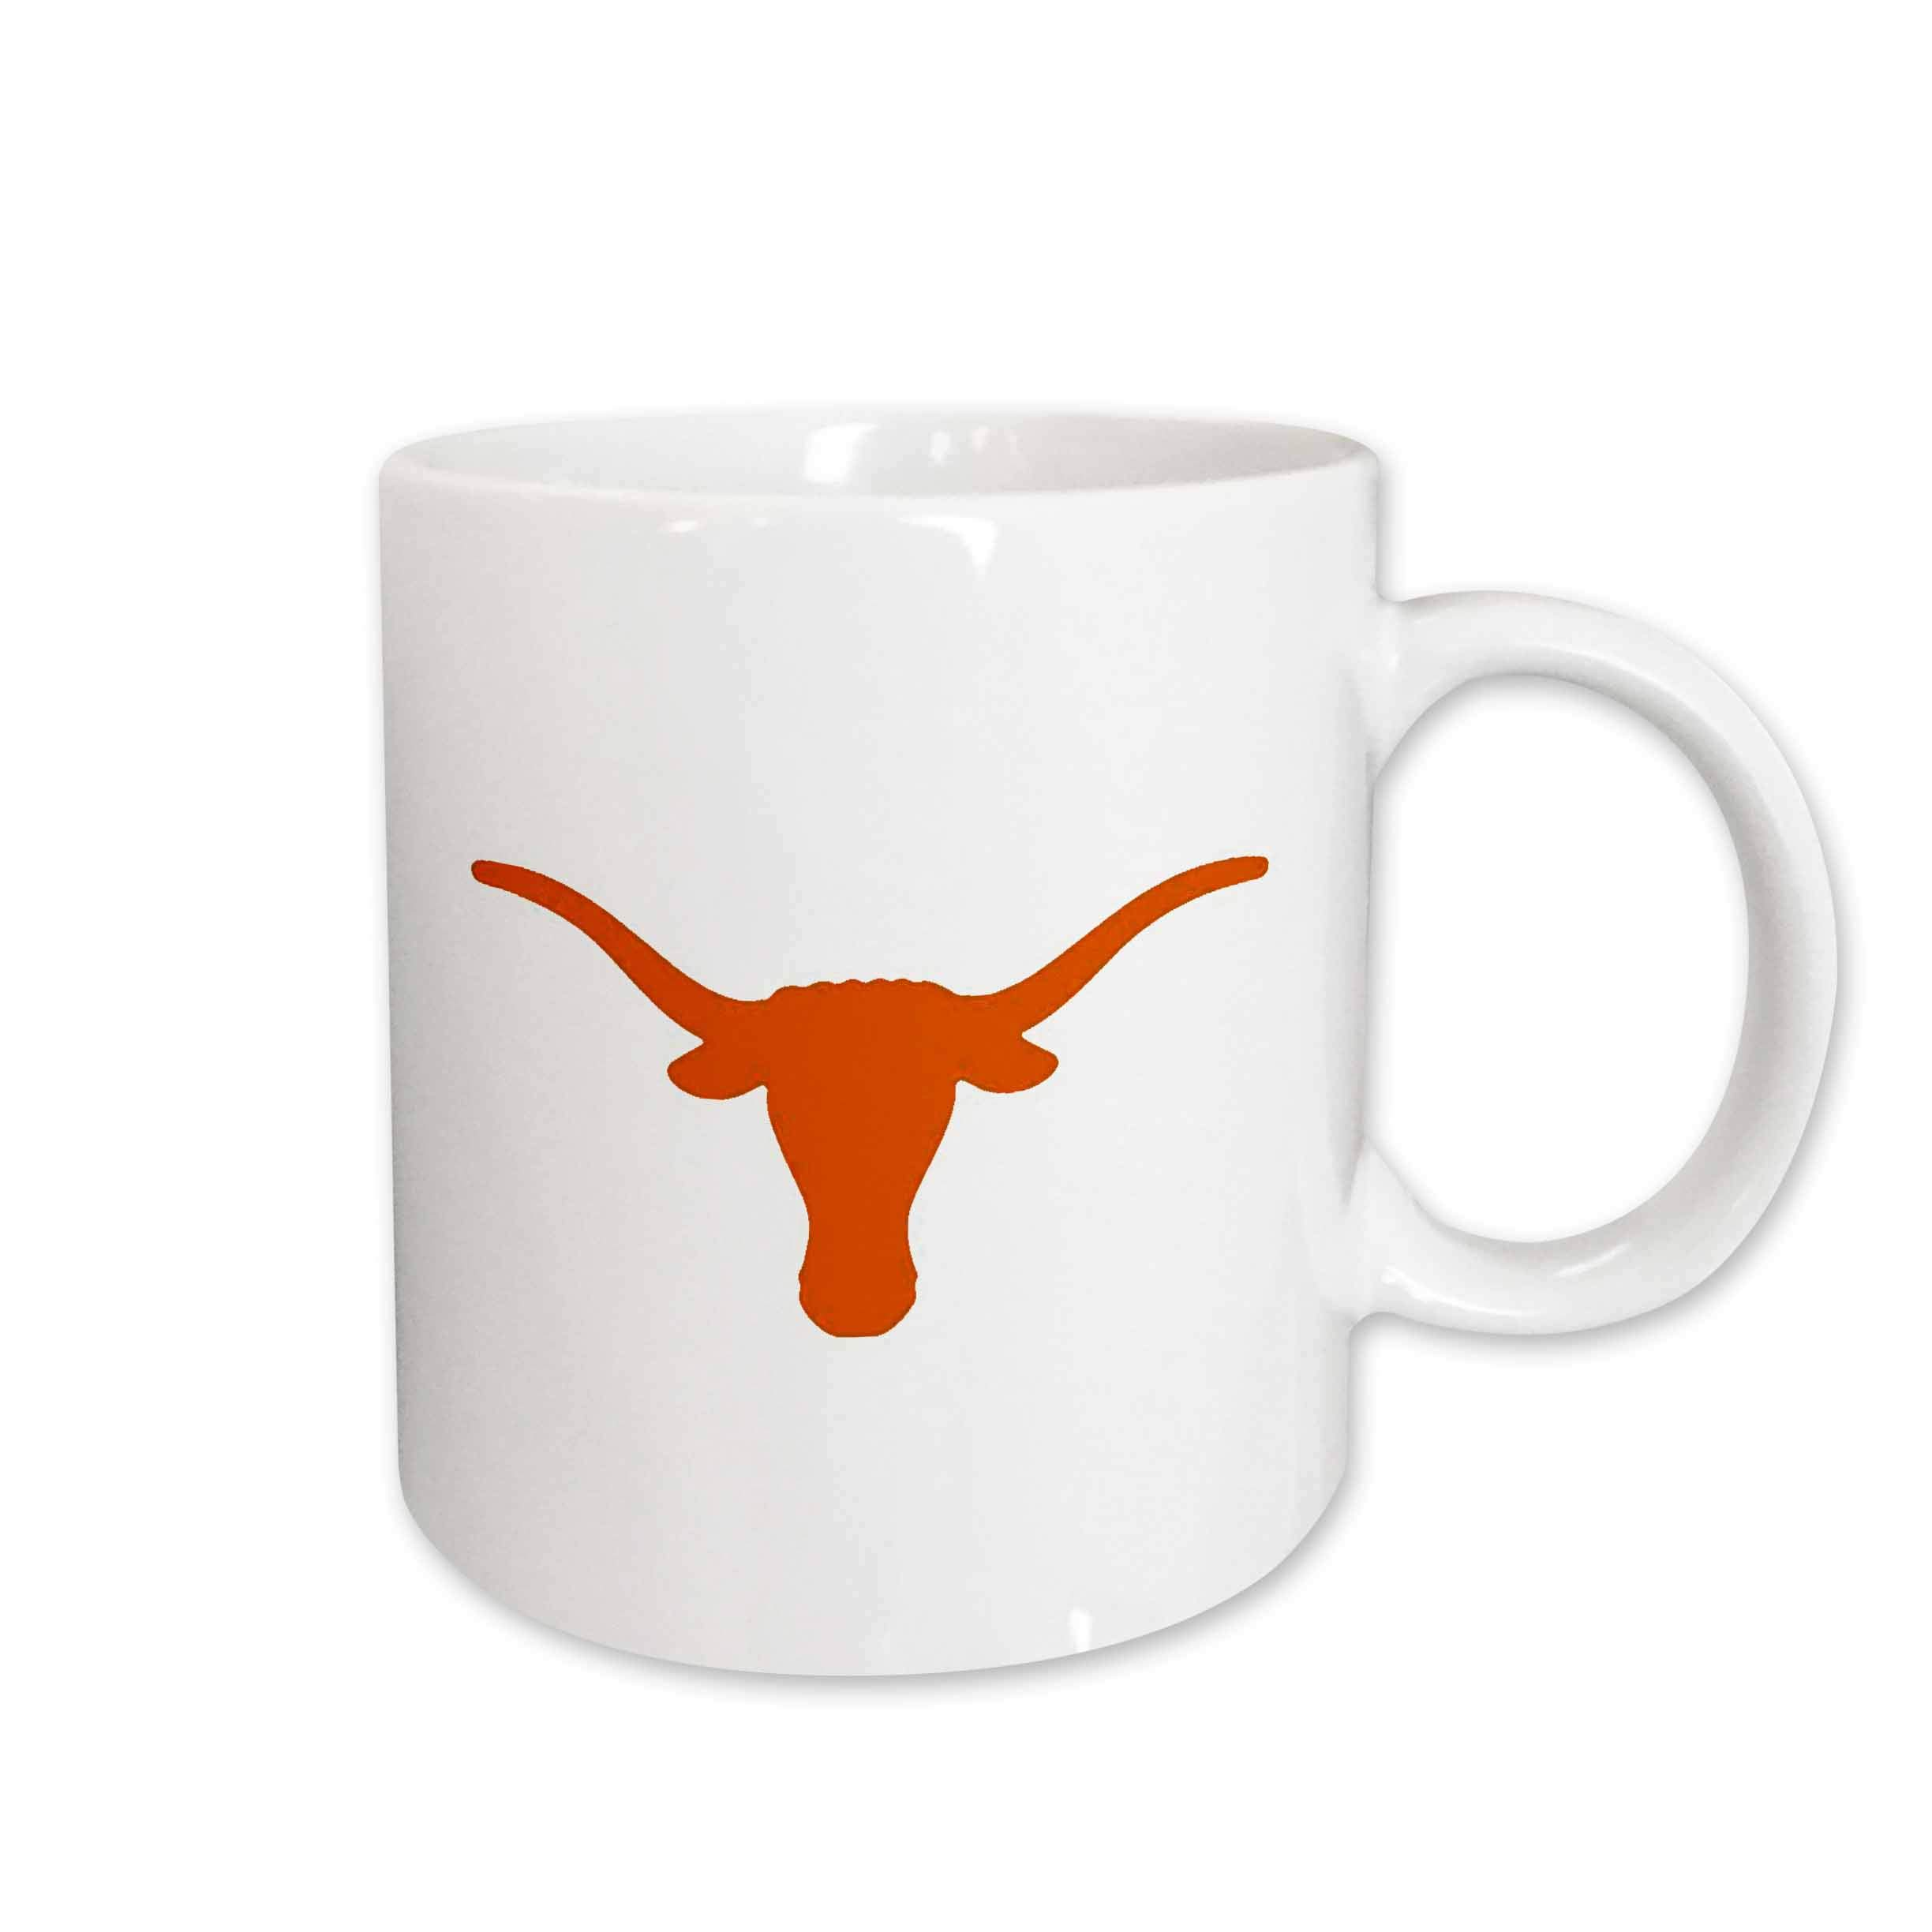 3dRose Longhorns Ceramic Mug, 11-Ounce